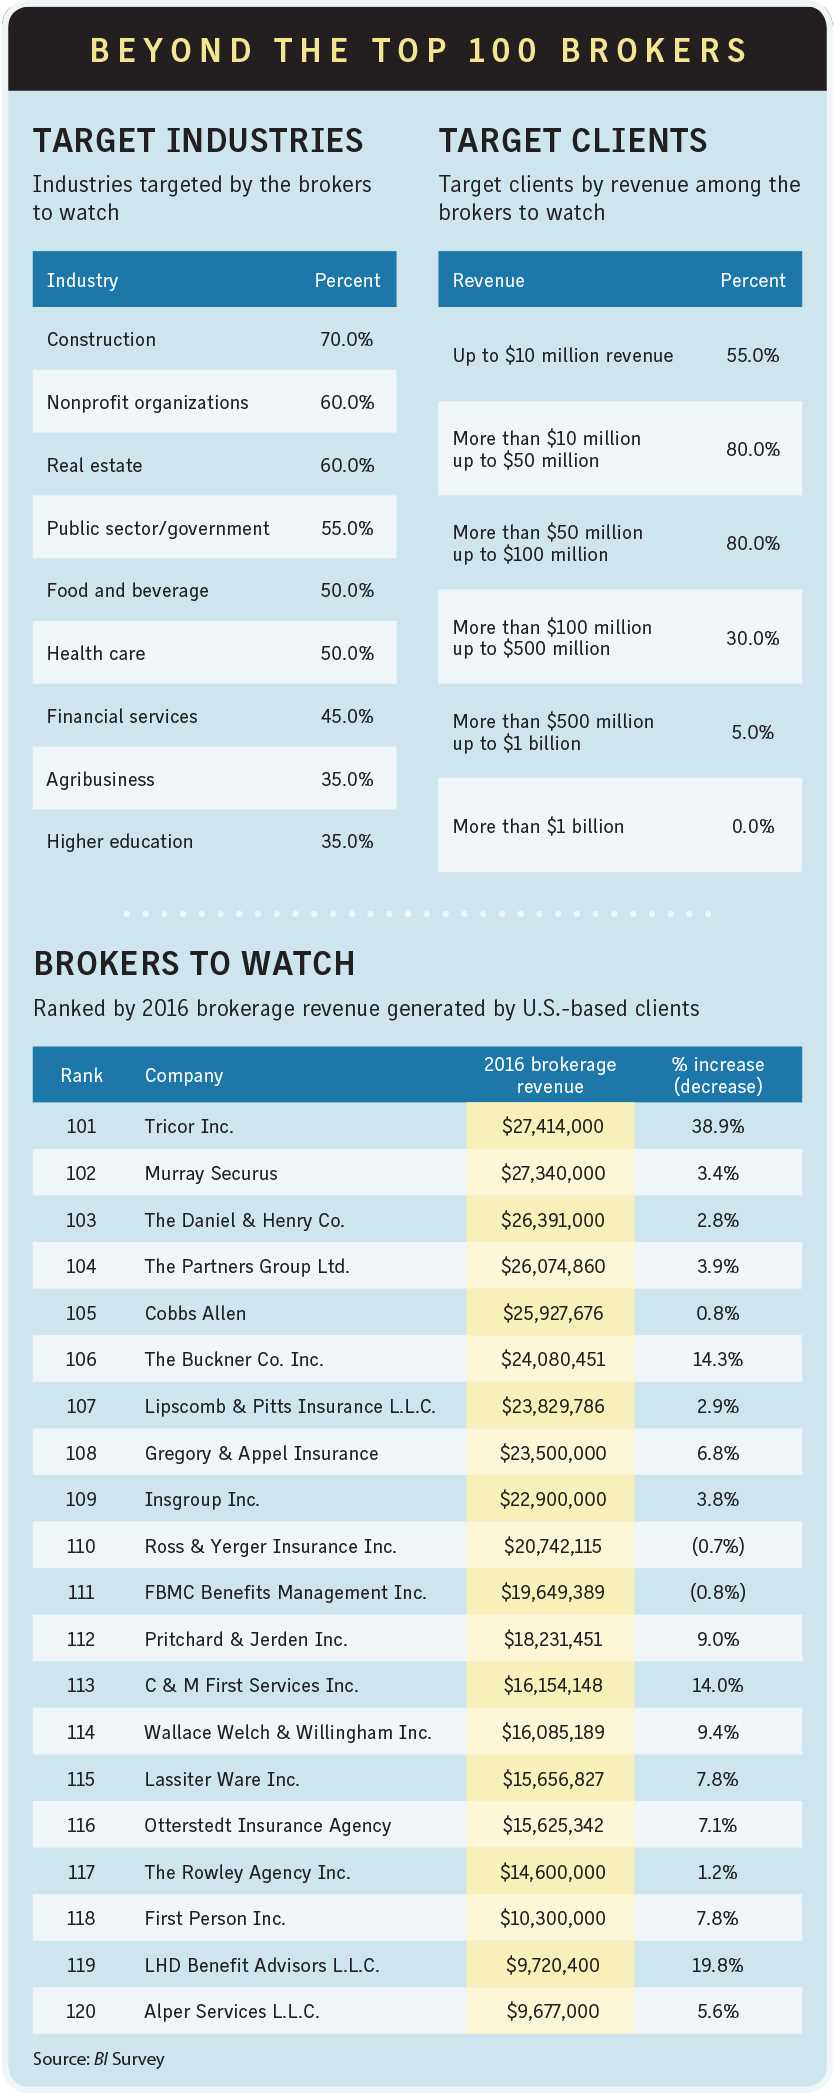 Beyond the Top 100 brokers